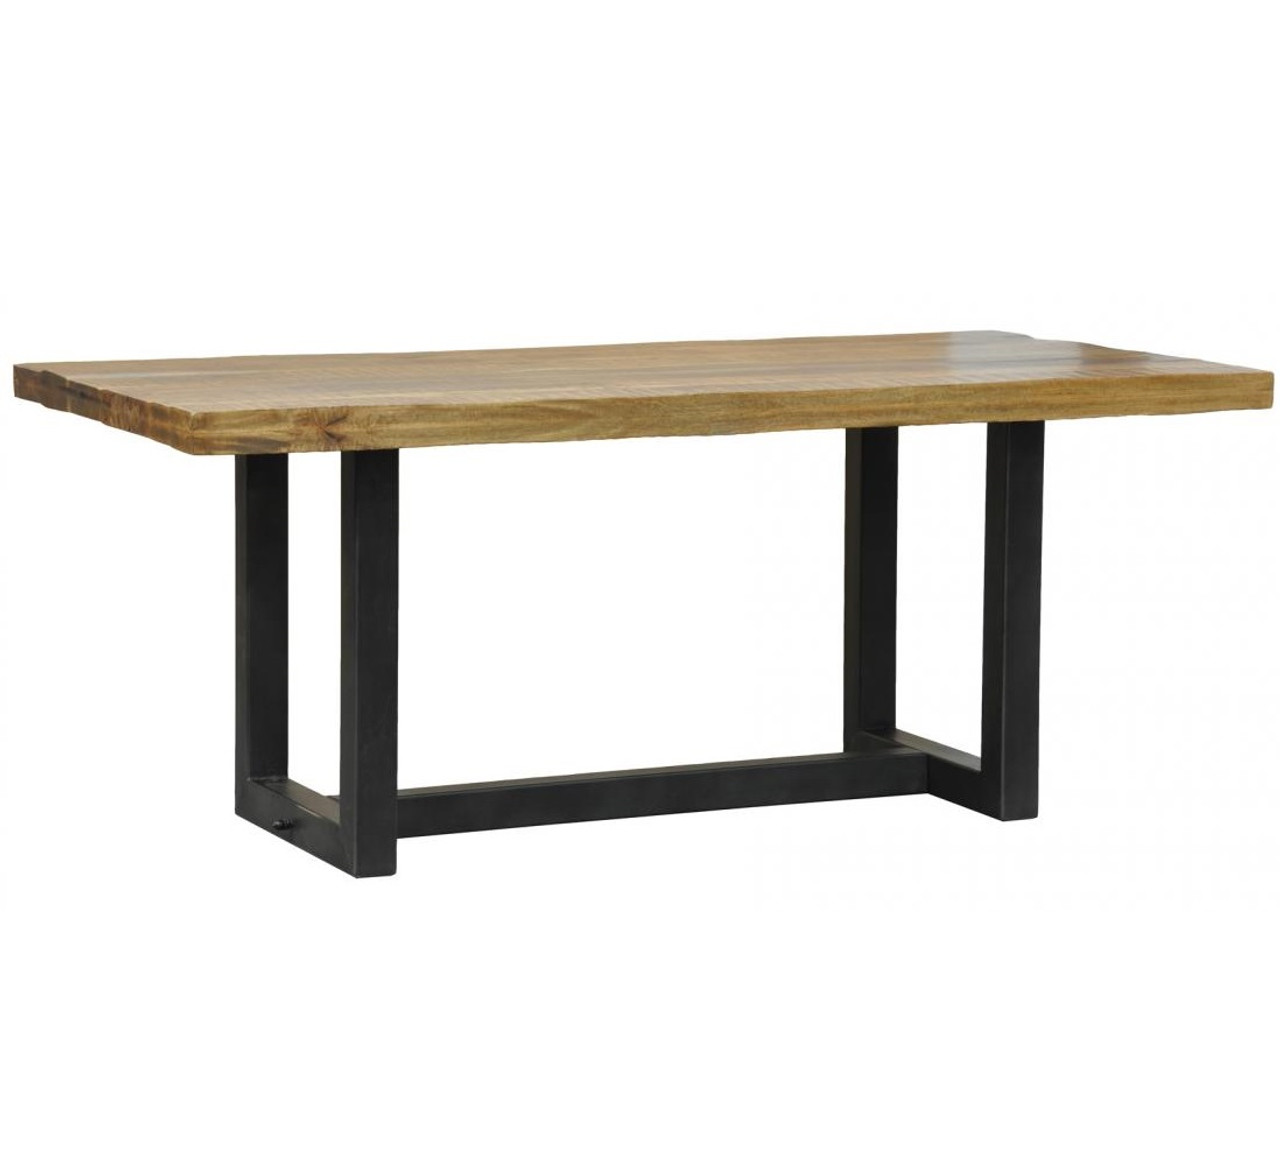 Restoration Metal Wood 76 Dining Table Zin Home